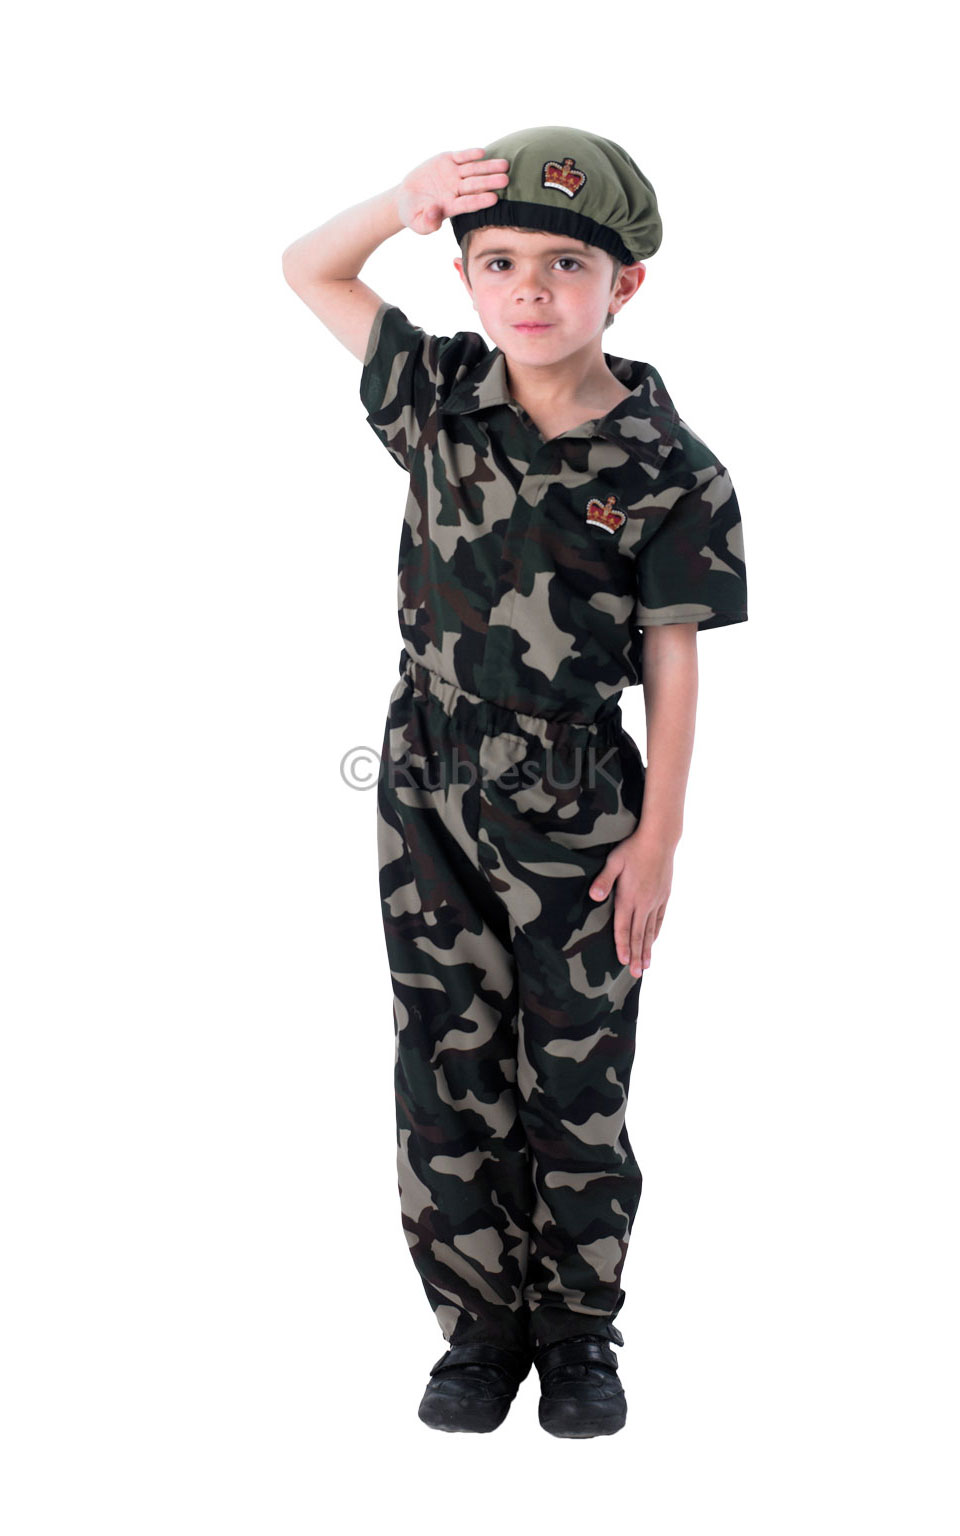 kinder soldaten junge kost m armee milit r outfit marine kadetten 5 6 jahre ebay. Black Bedroom Furniture Sets. Home Design Ideas